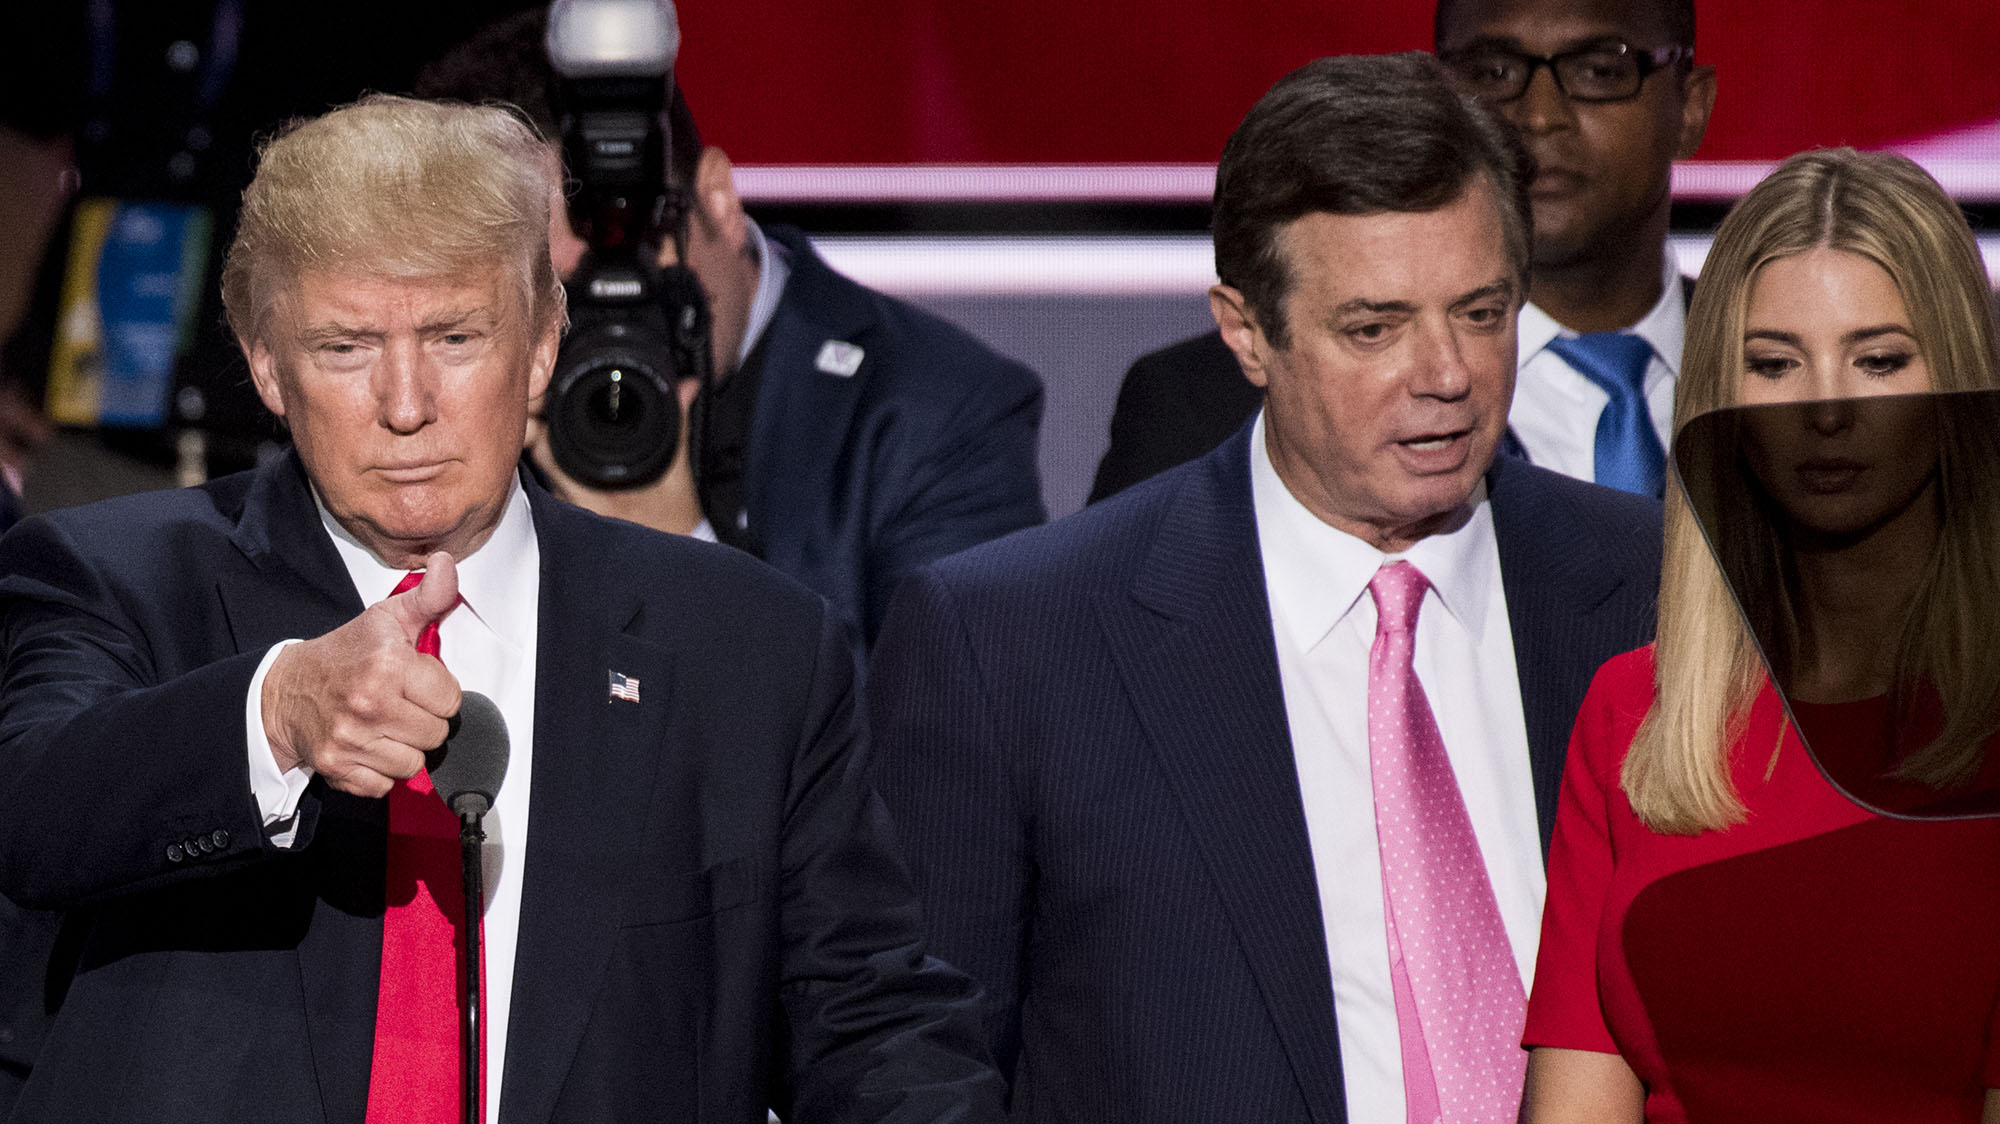 United States  investigators wiretapped Paul Manafort, report says